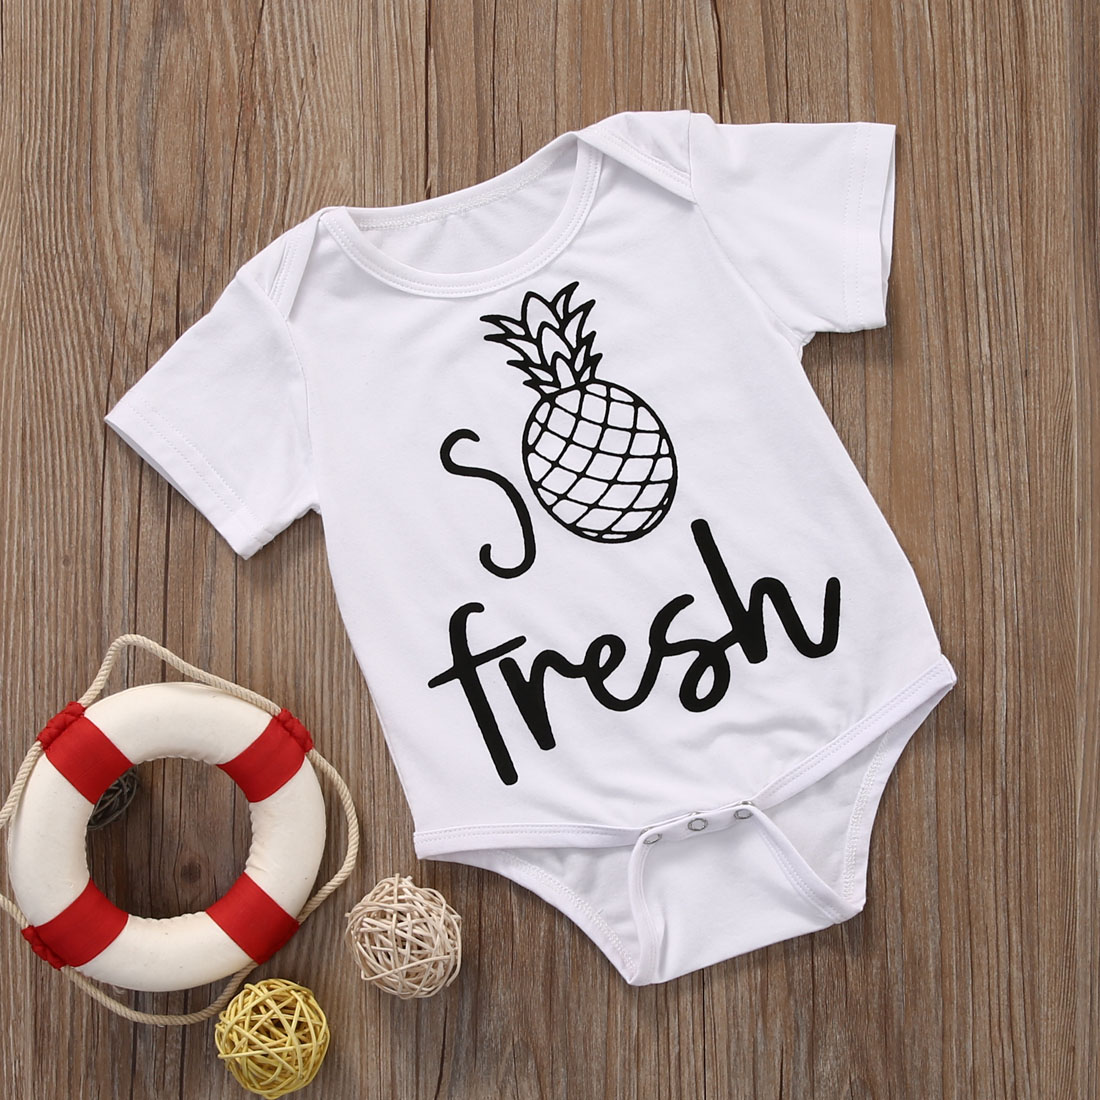 dab82a978216 Detail Feedback Questions about Newborn Rompers Infant Baby Boy Girl ...